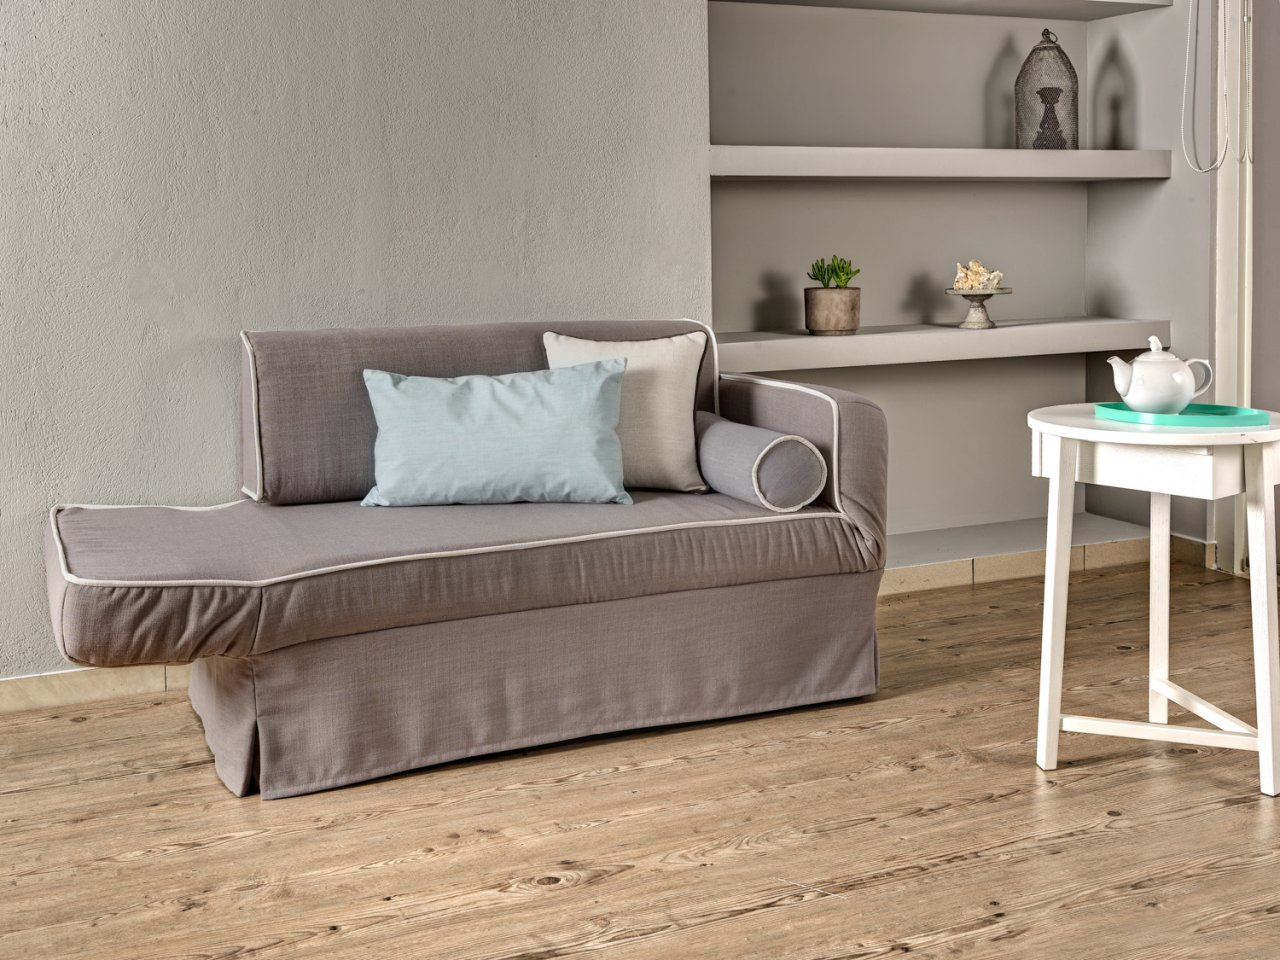 Three or two seater sofa Island / single bed